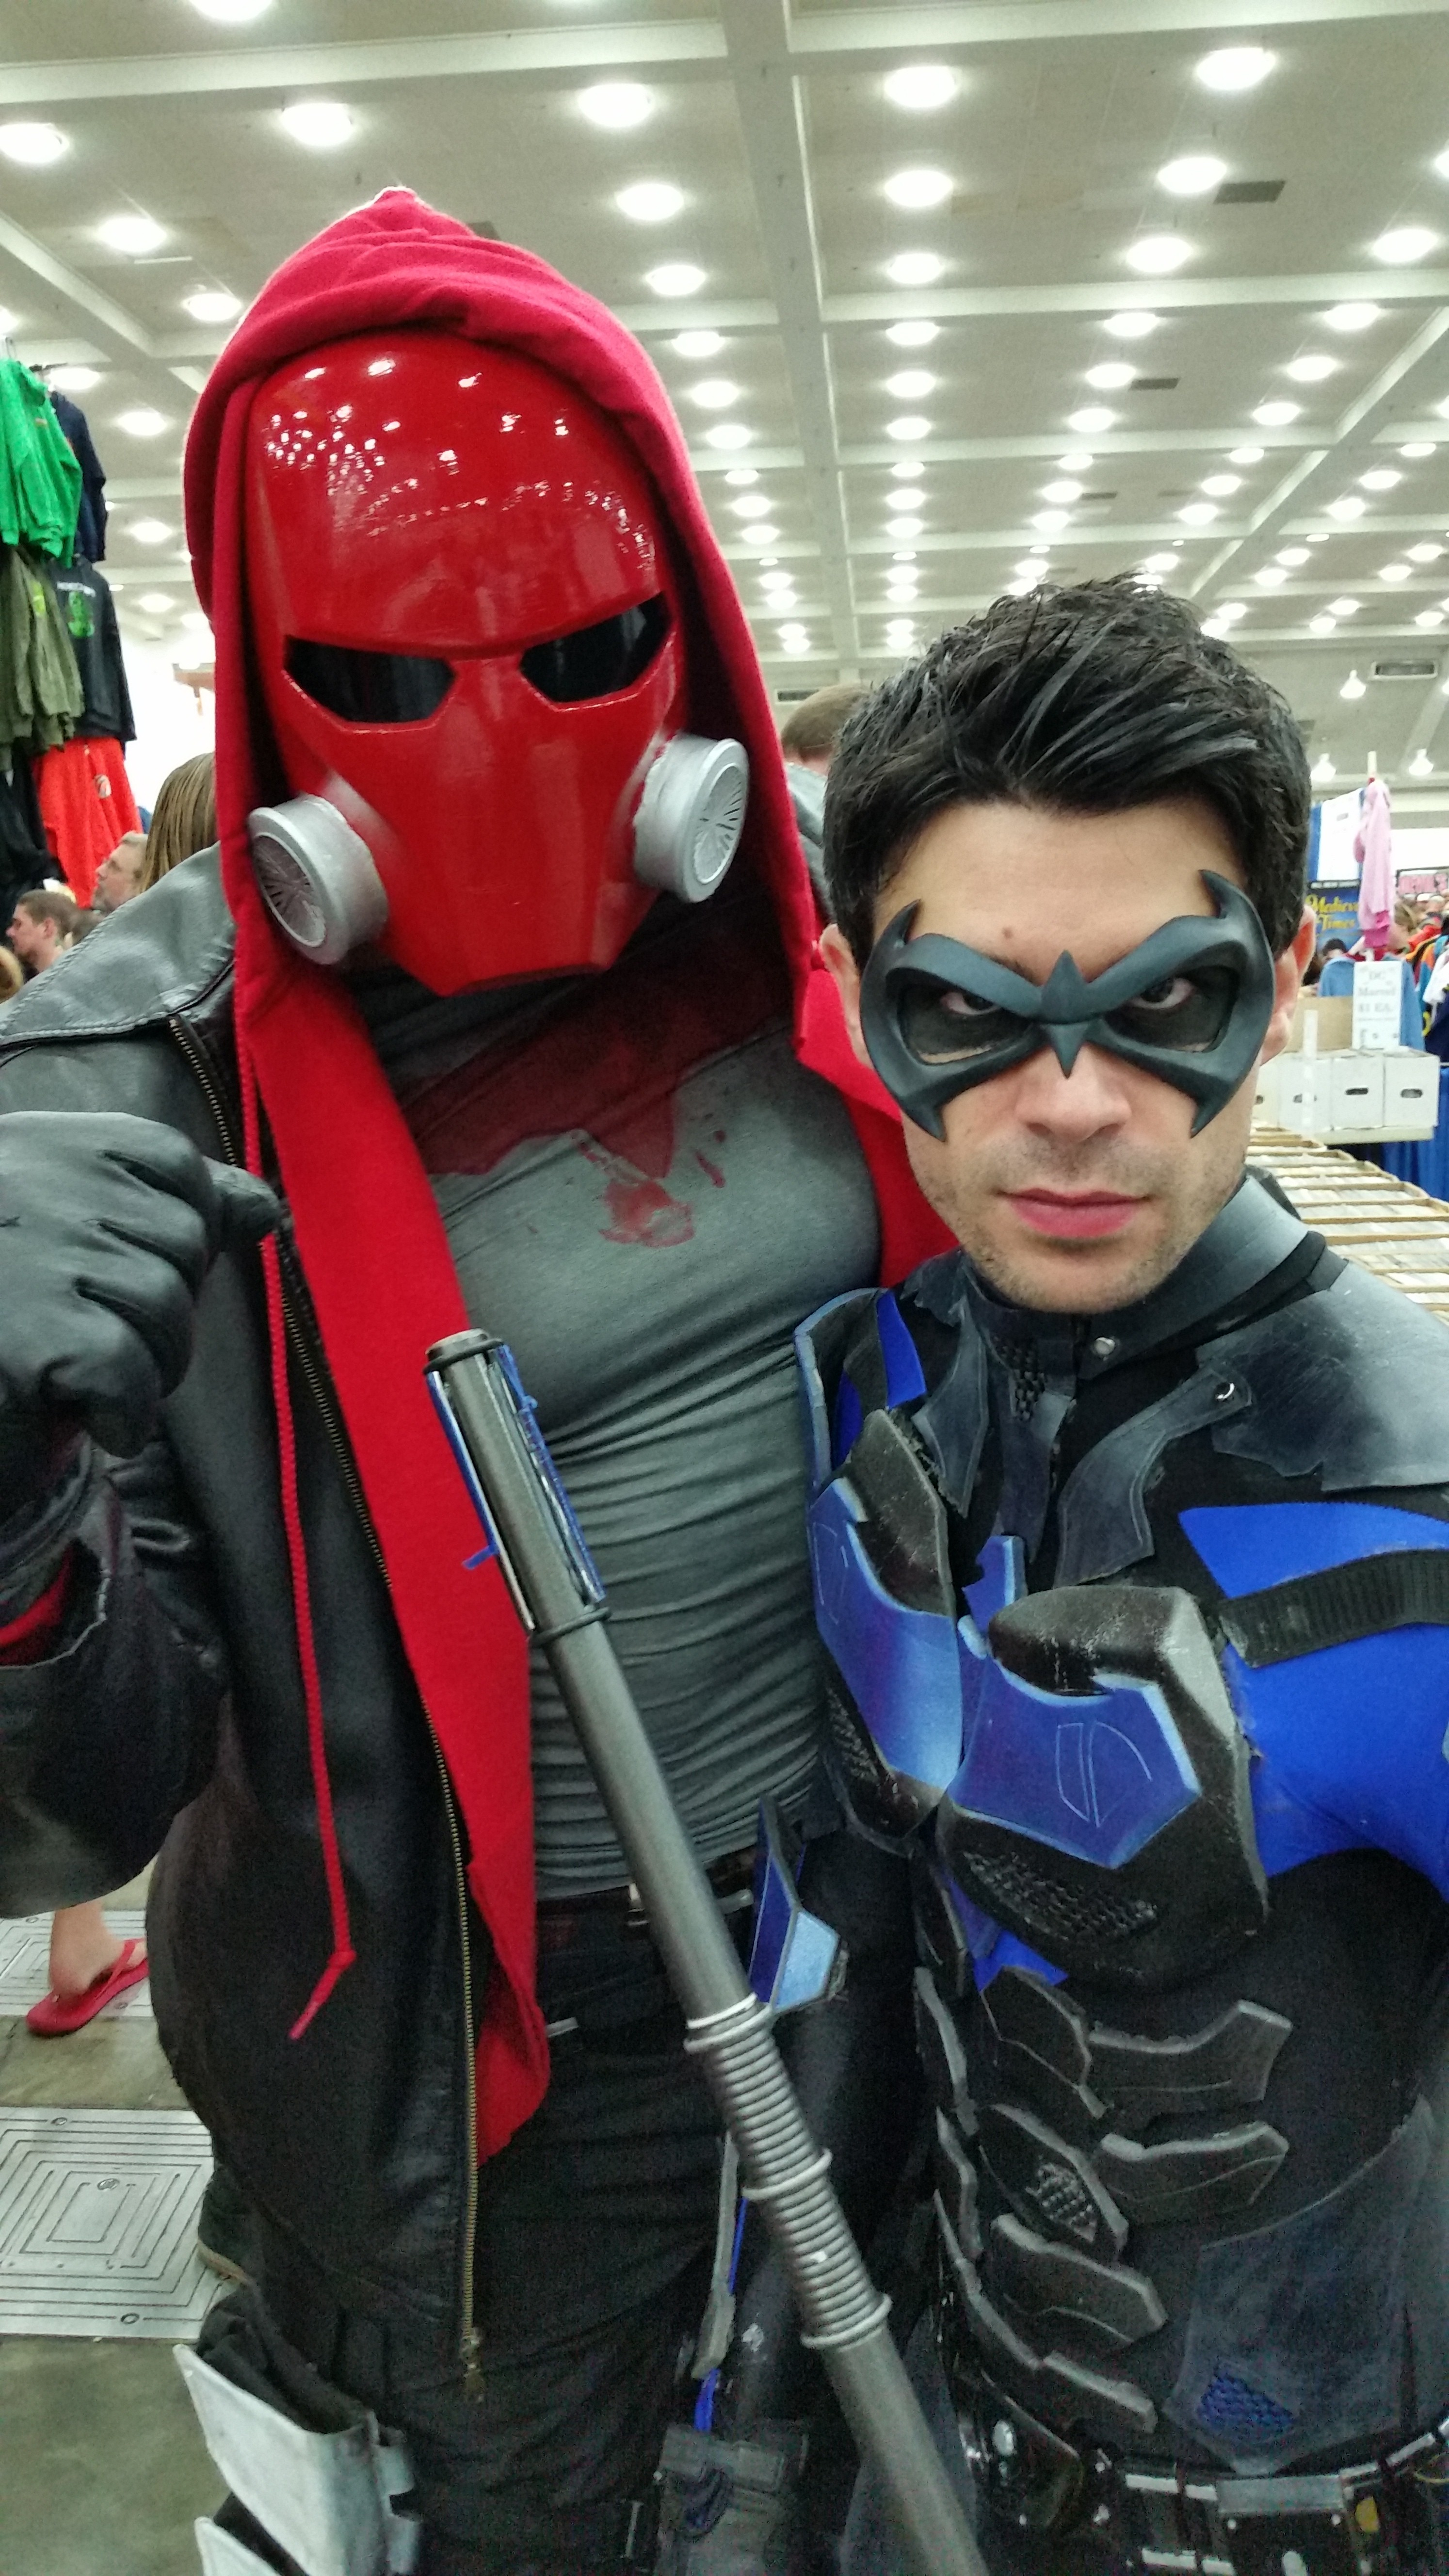 I was impressed by the Nightwing costume.  sc 1 st  Pop Culture Affidavit & Pop Culture Affidavit Episode 35: Geekery III: THE DOMINATION |